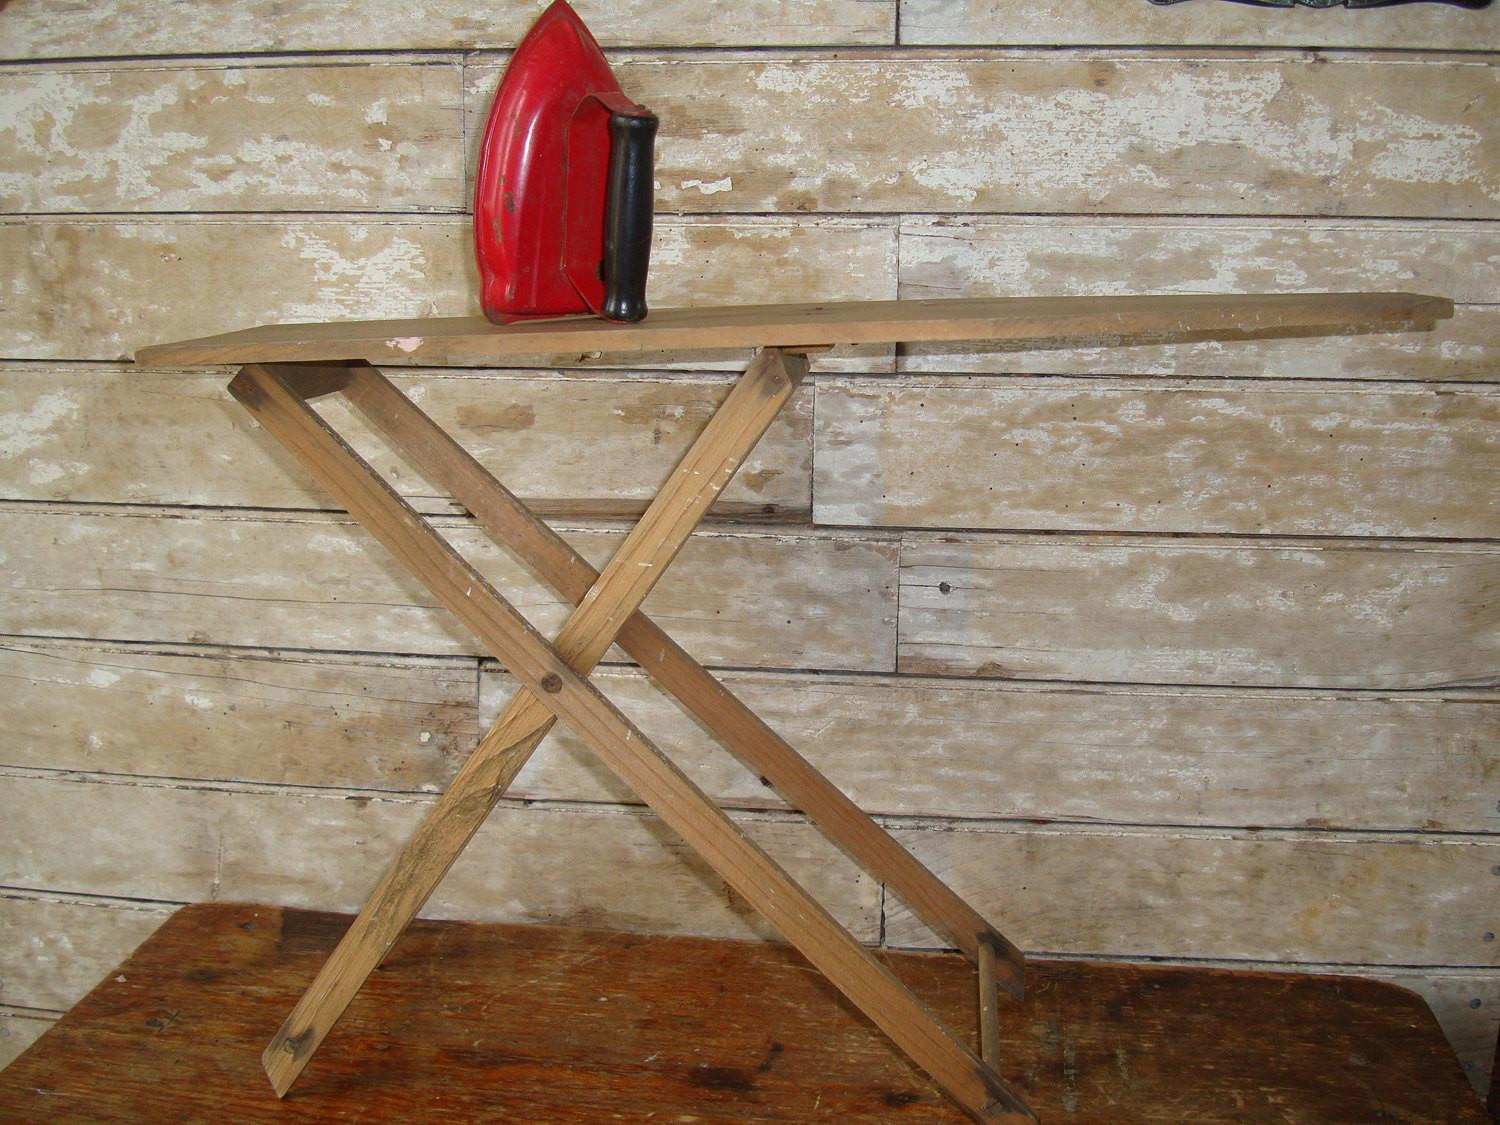 Vintage Childs Wooden Ironing Board Shabby Chic Red Iron